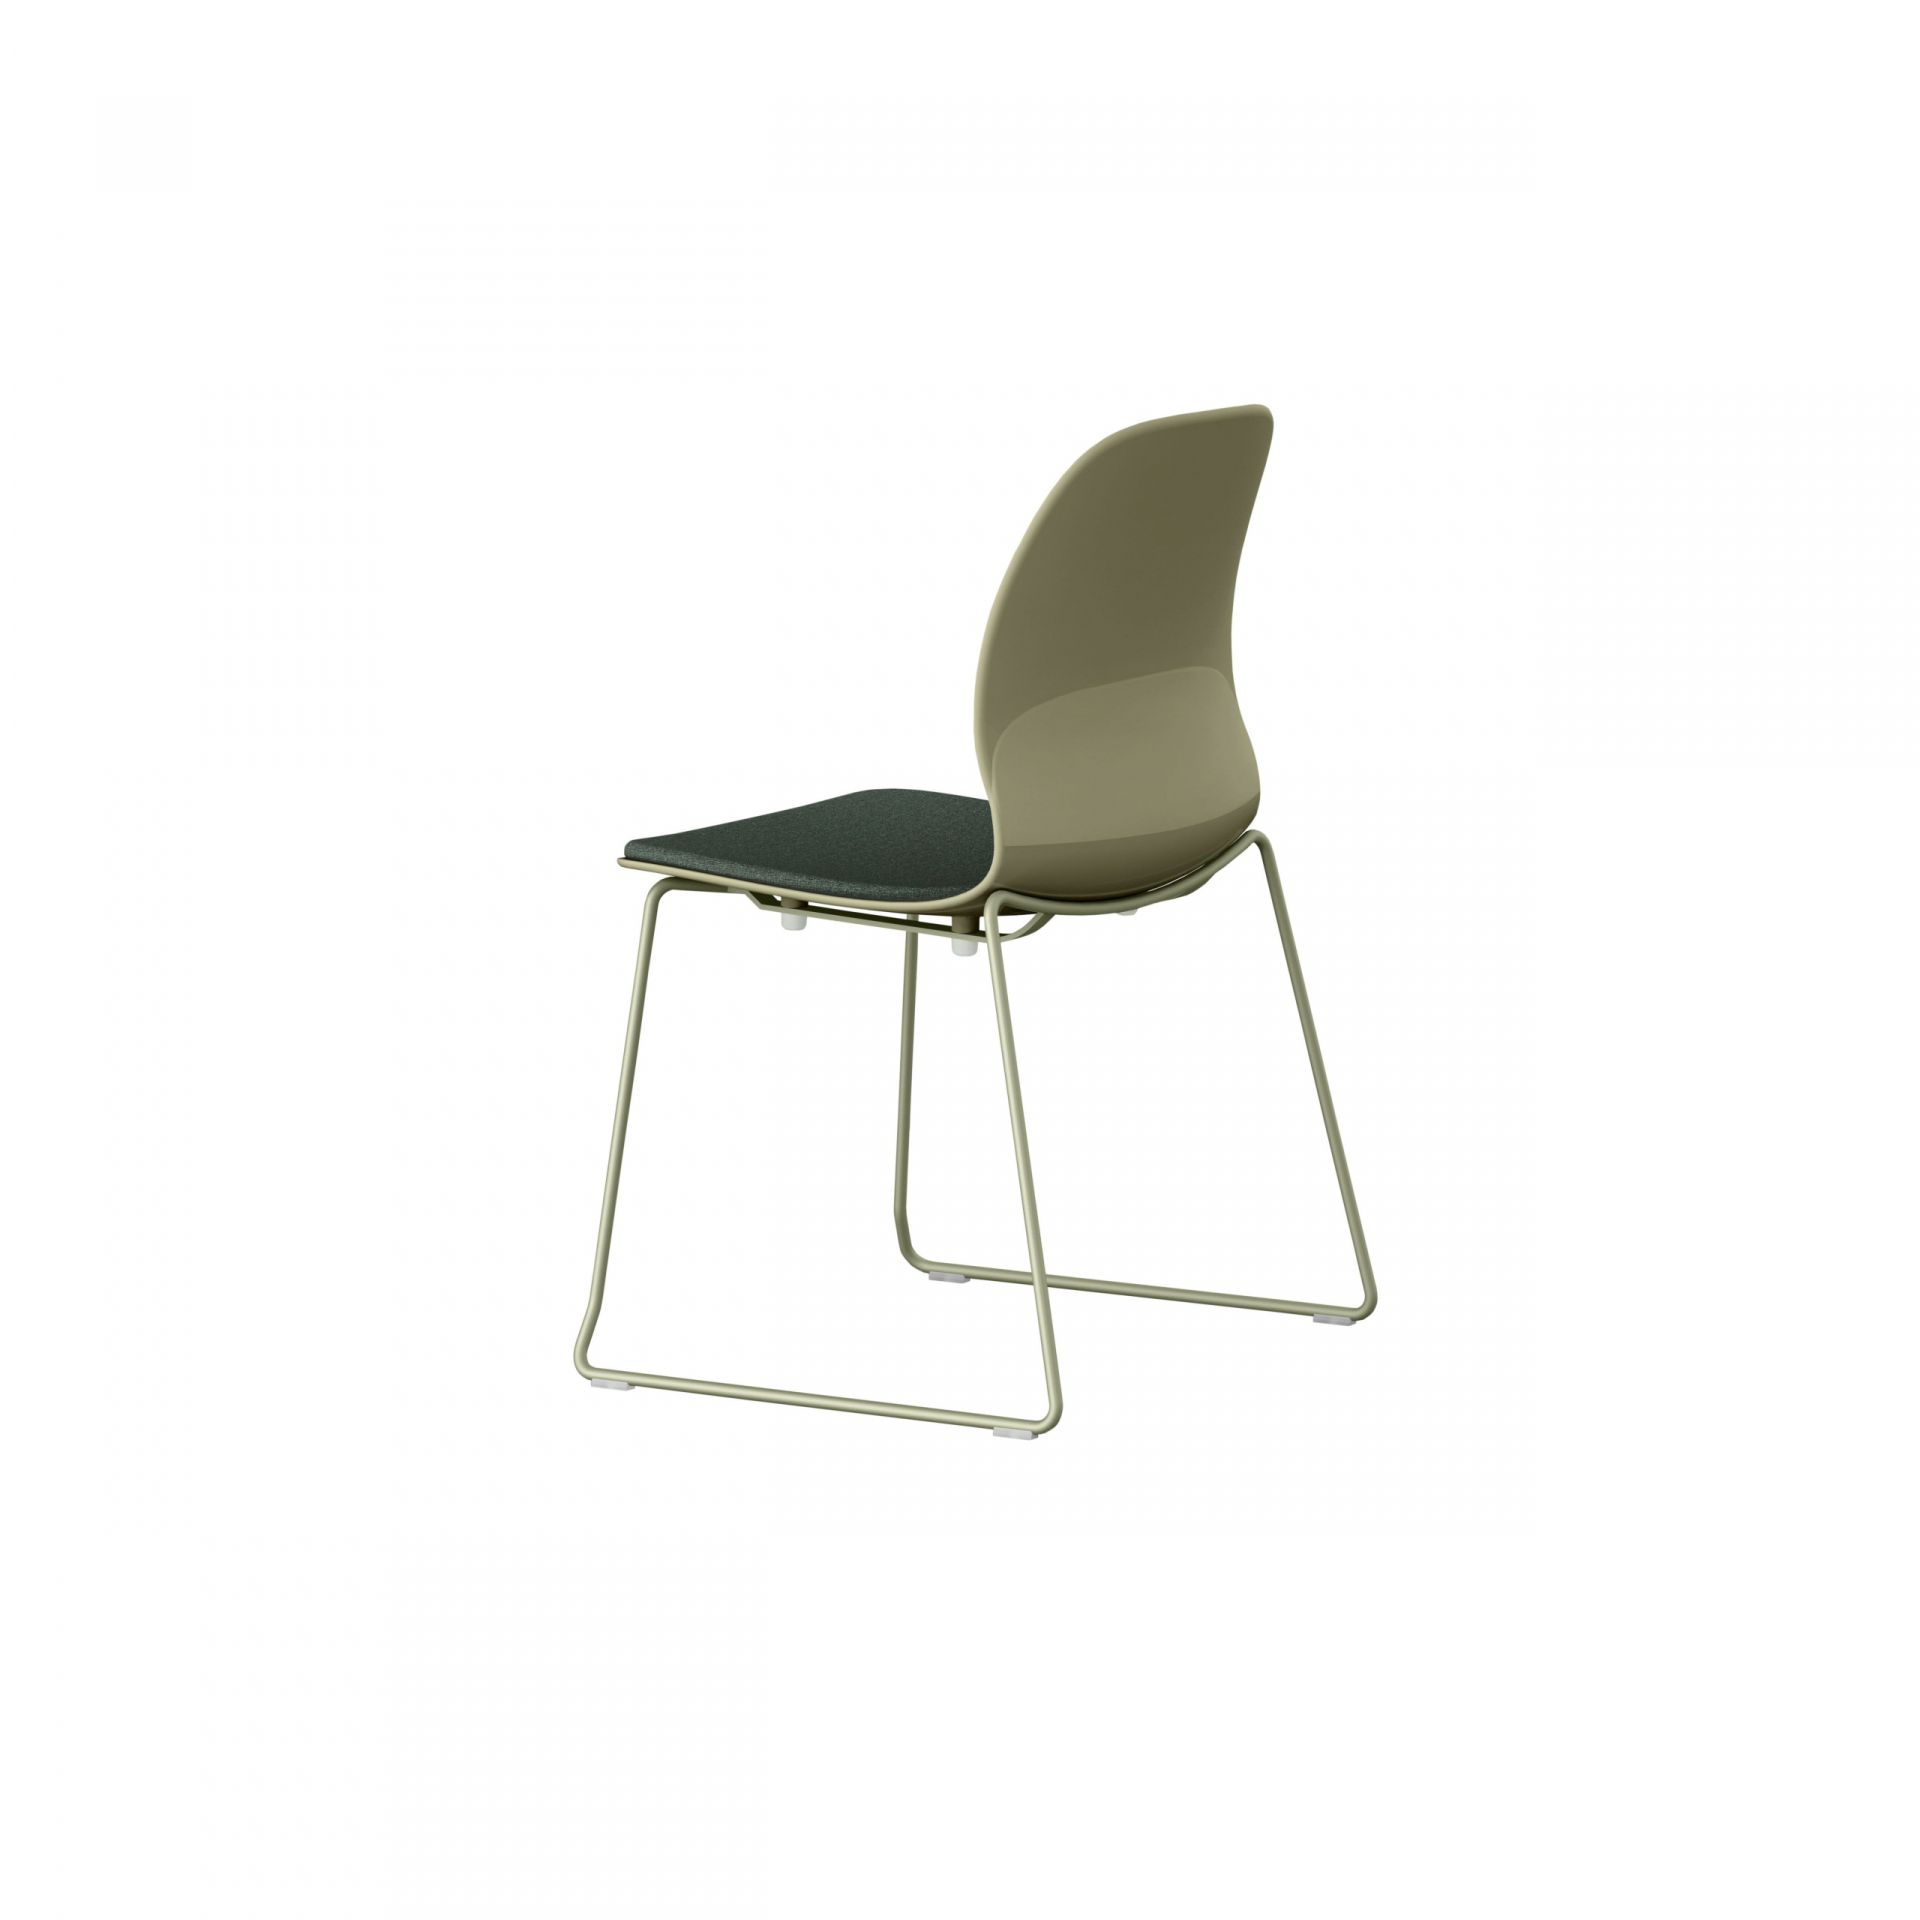 Archie Chair with sledge product image 2